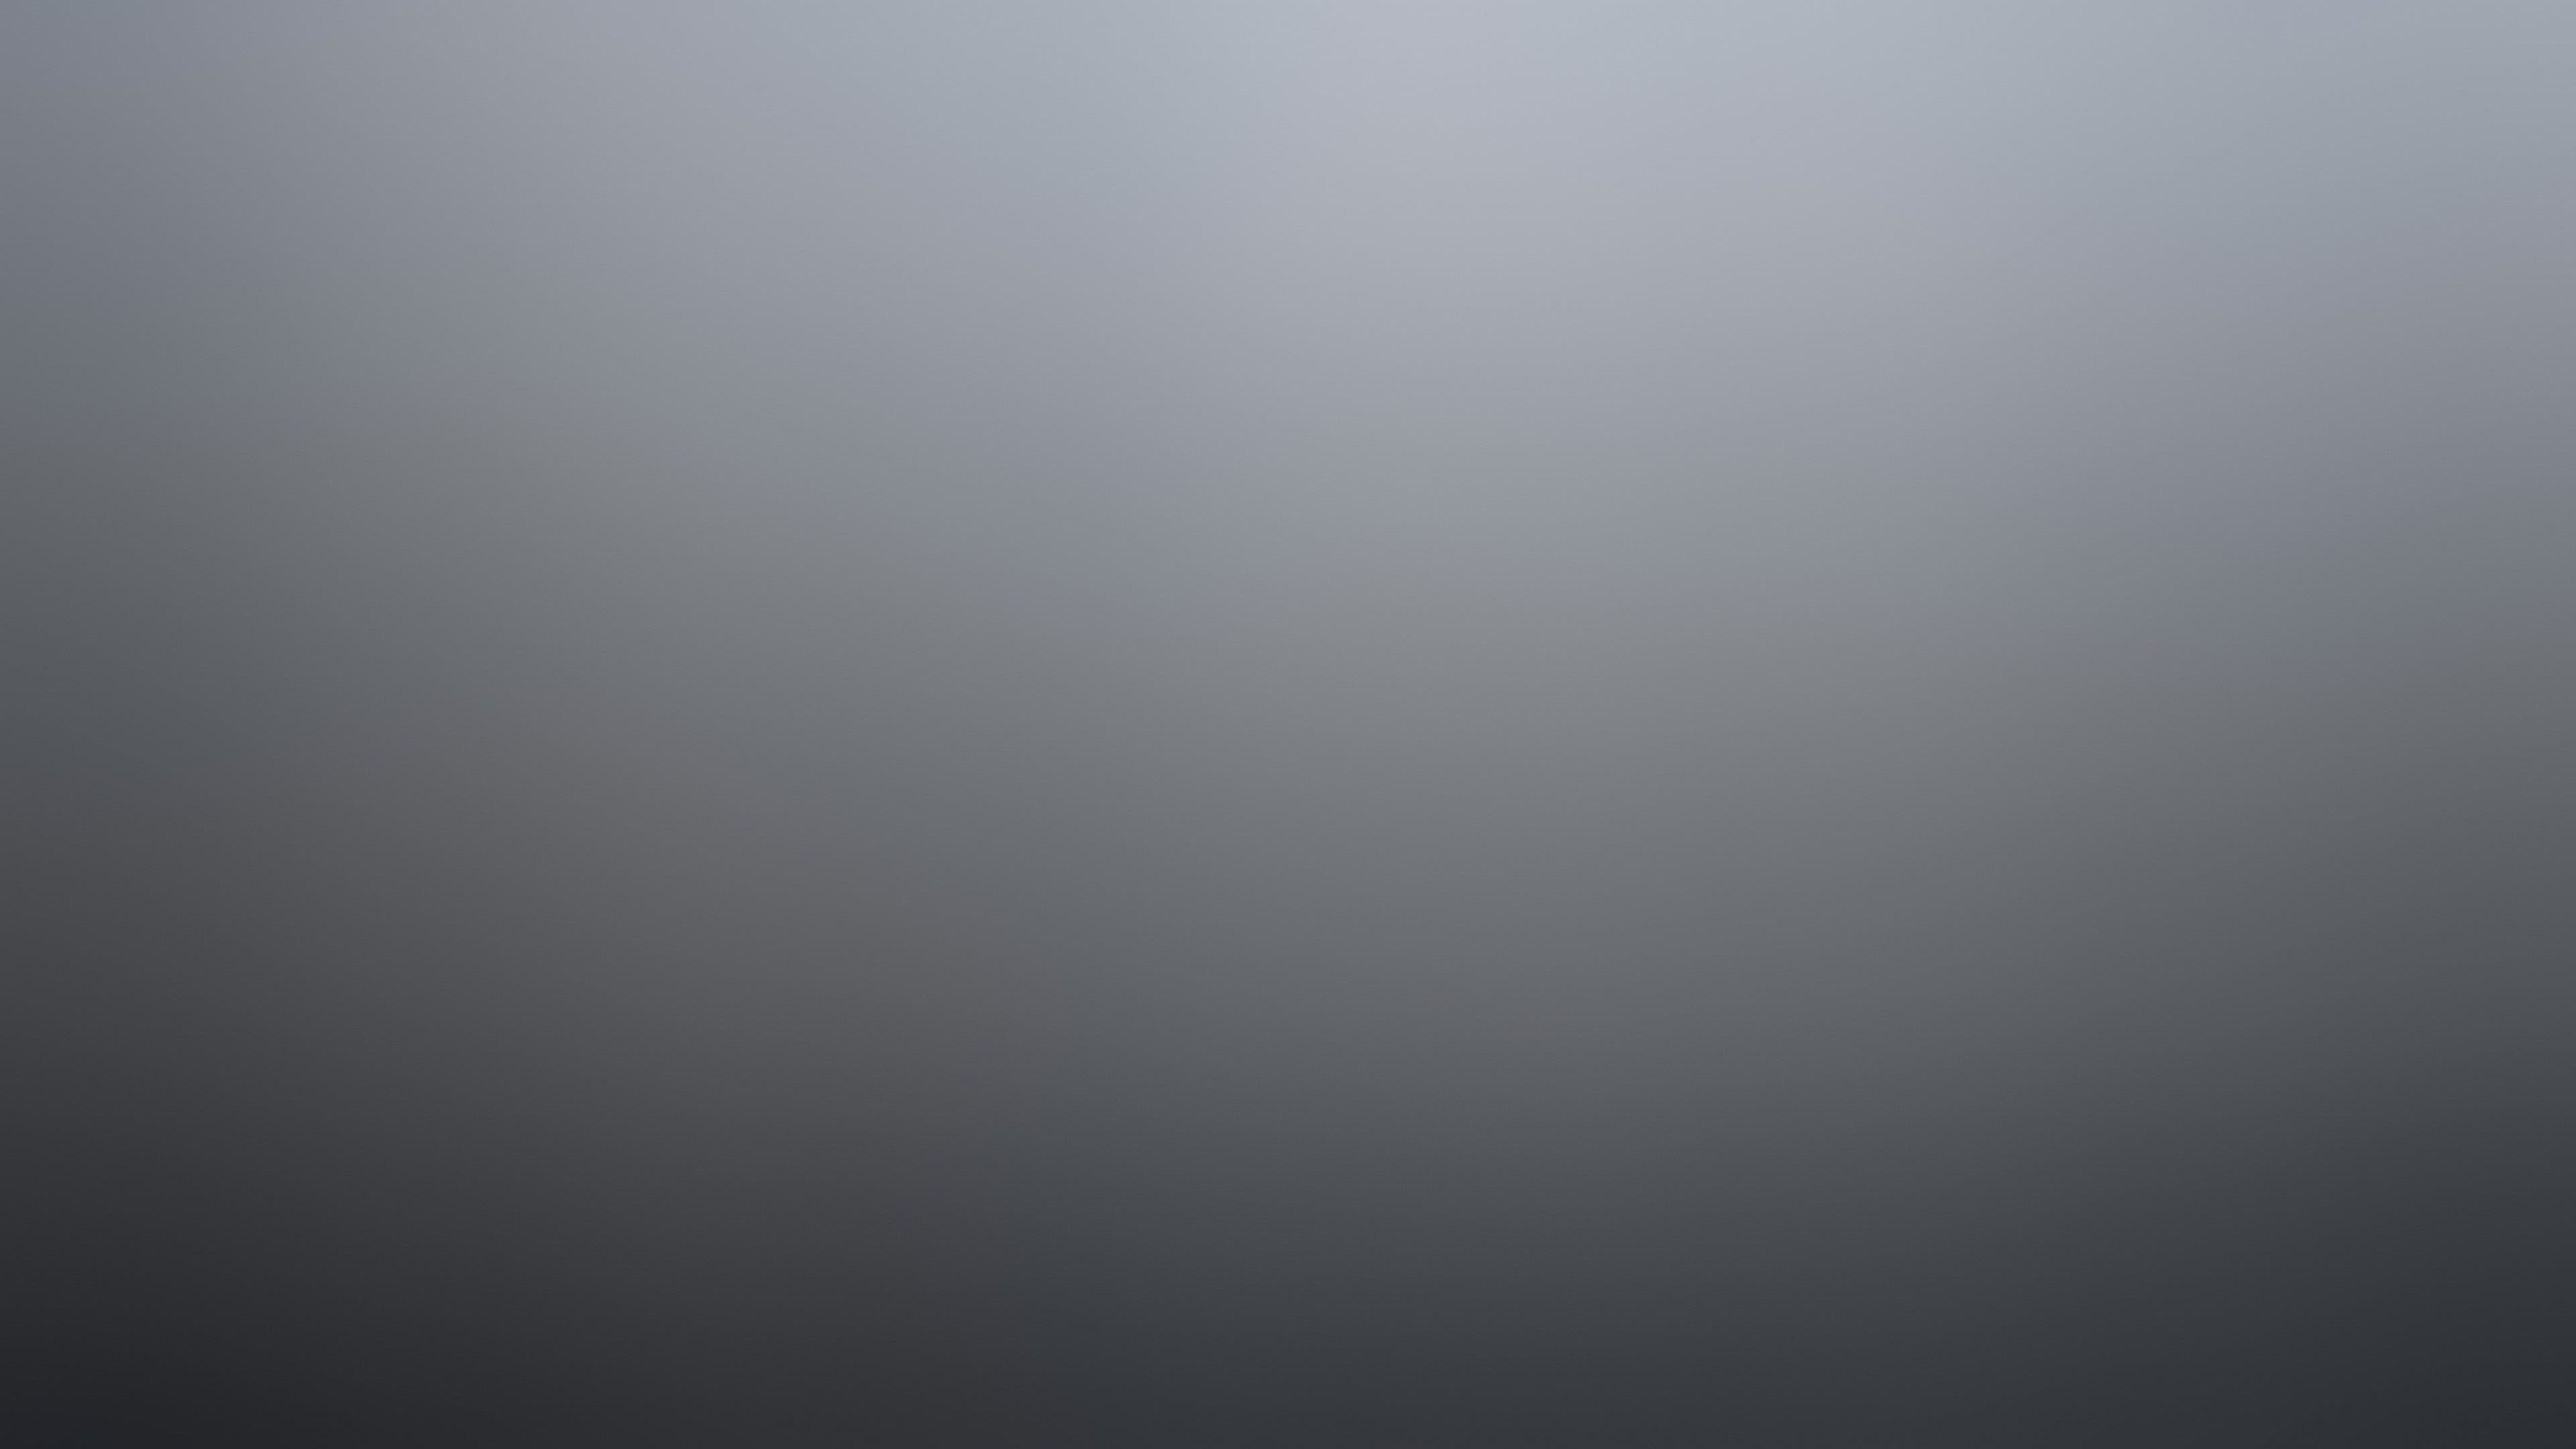 gradient grey uhd 4k wallpaper